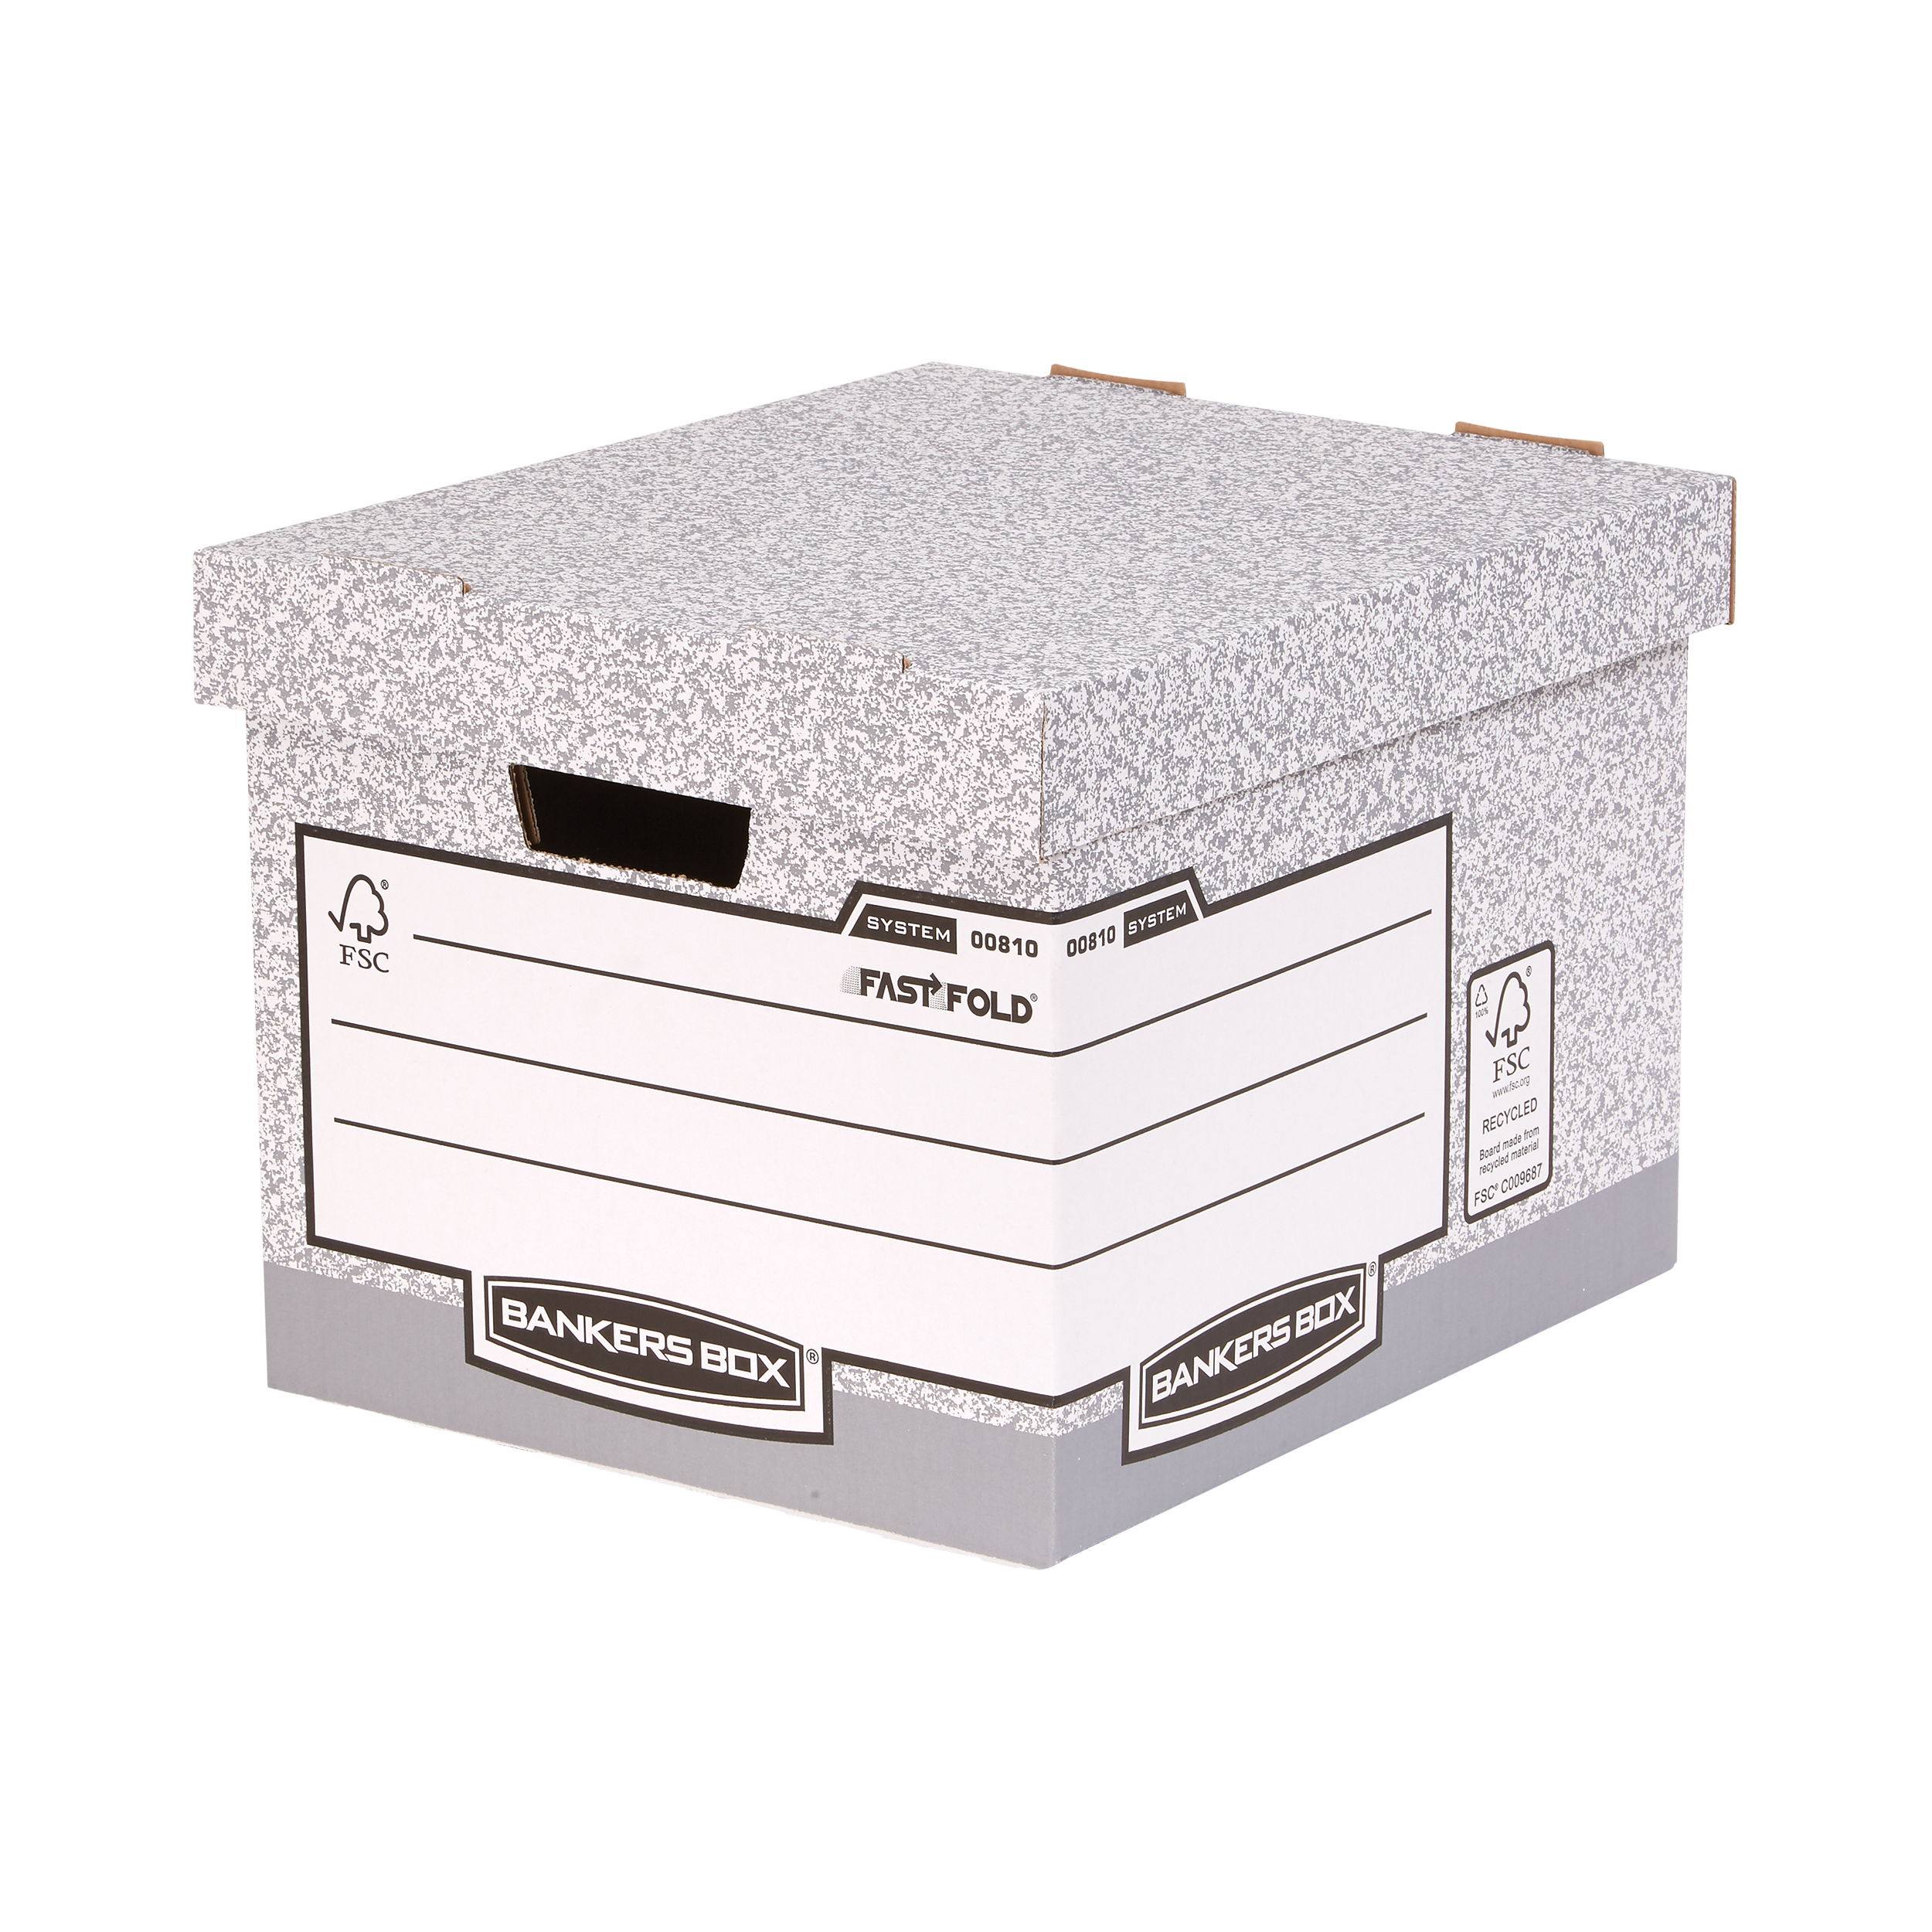 Storage Boxes Bankers Box by Fellowes System Standard Storage Box Foolscap FSC Ref 00810-FF Pack 10